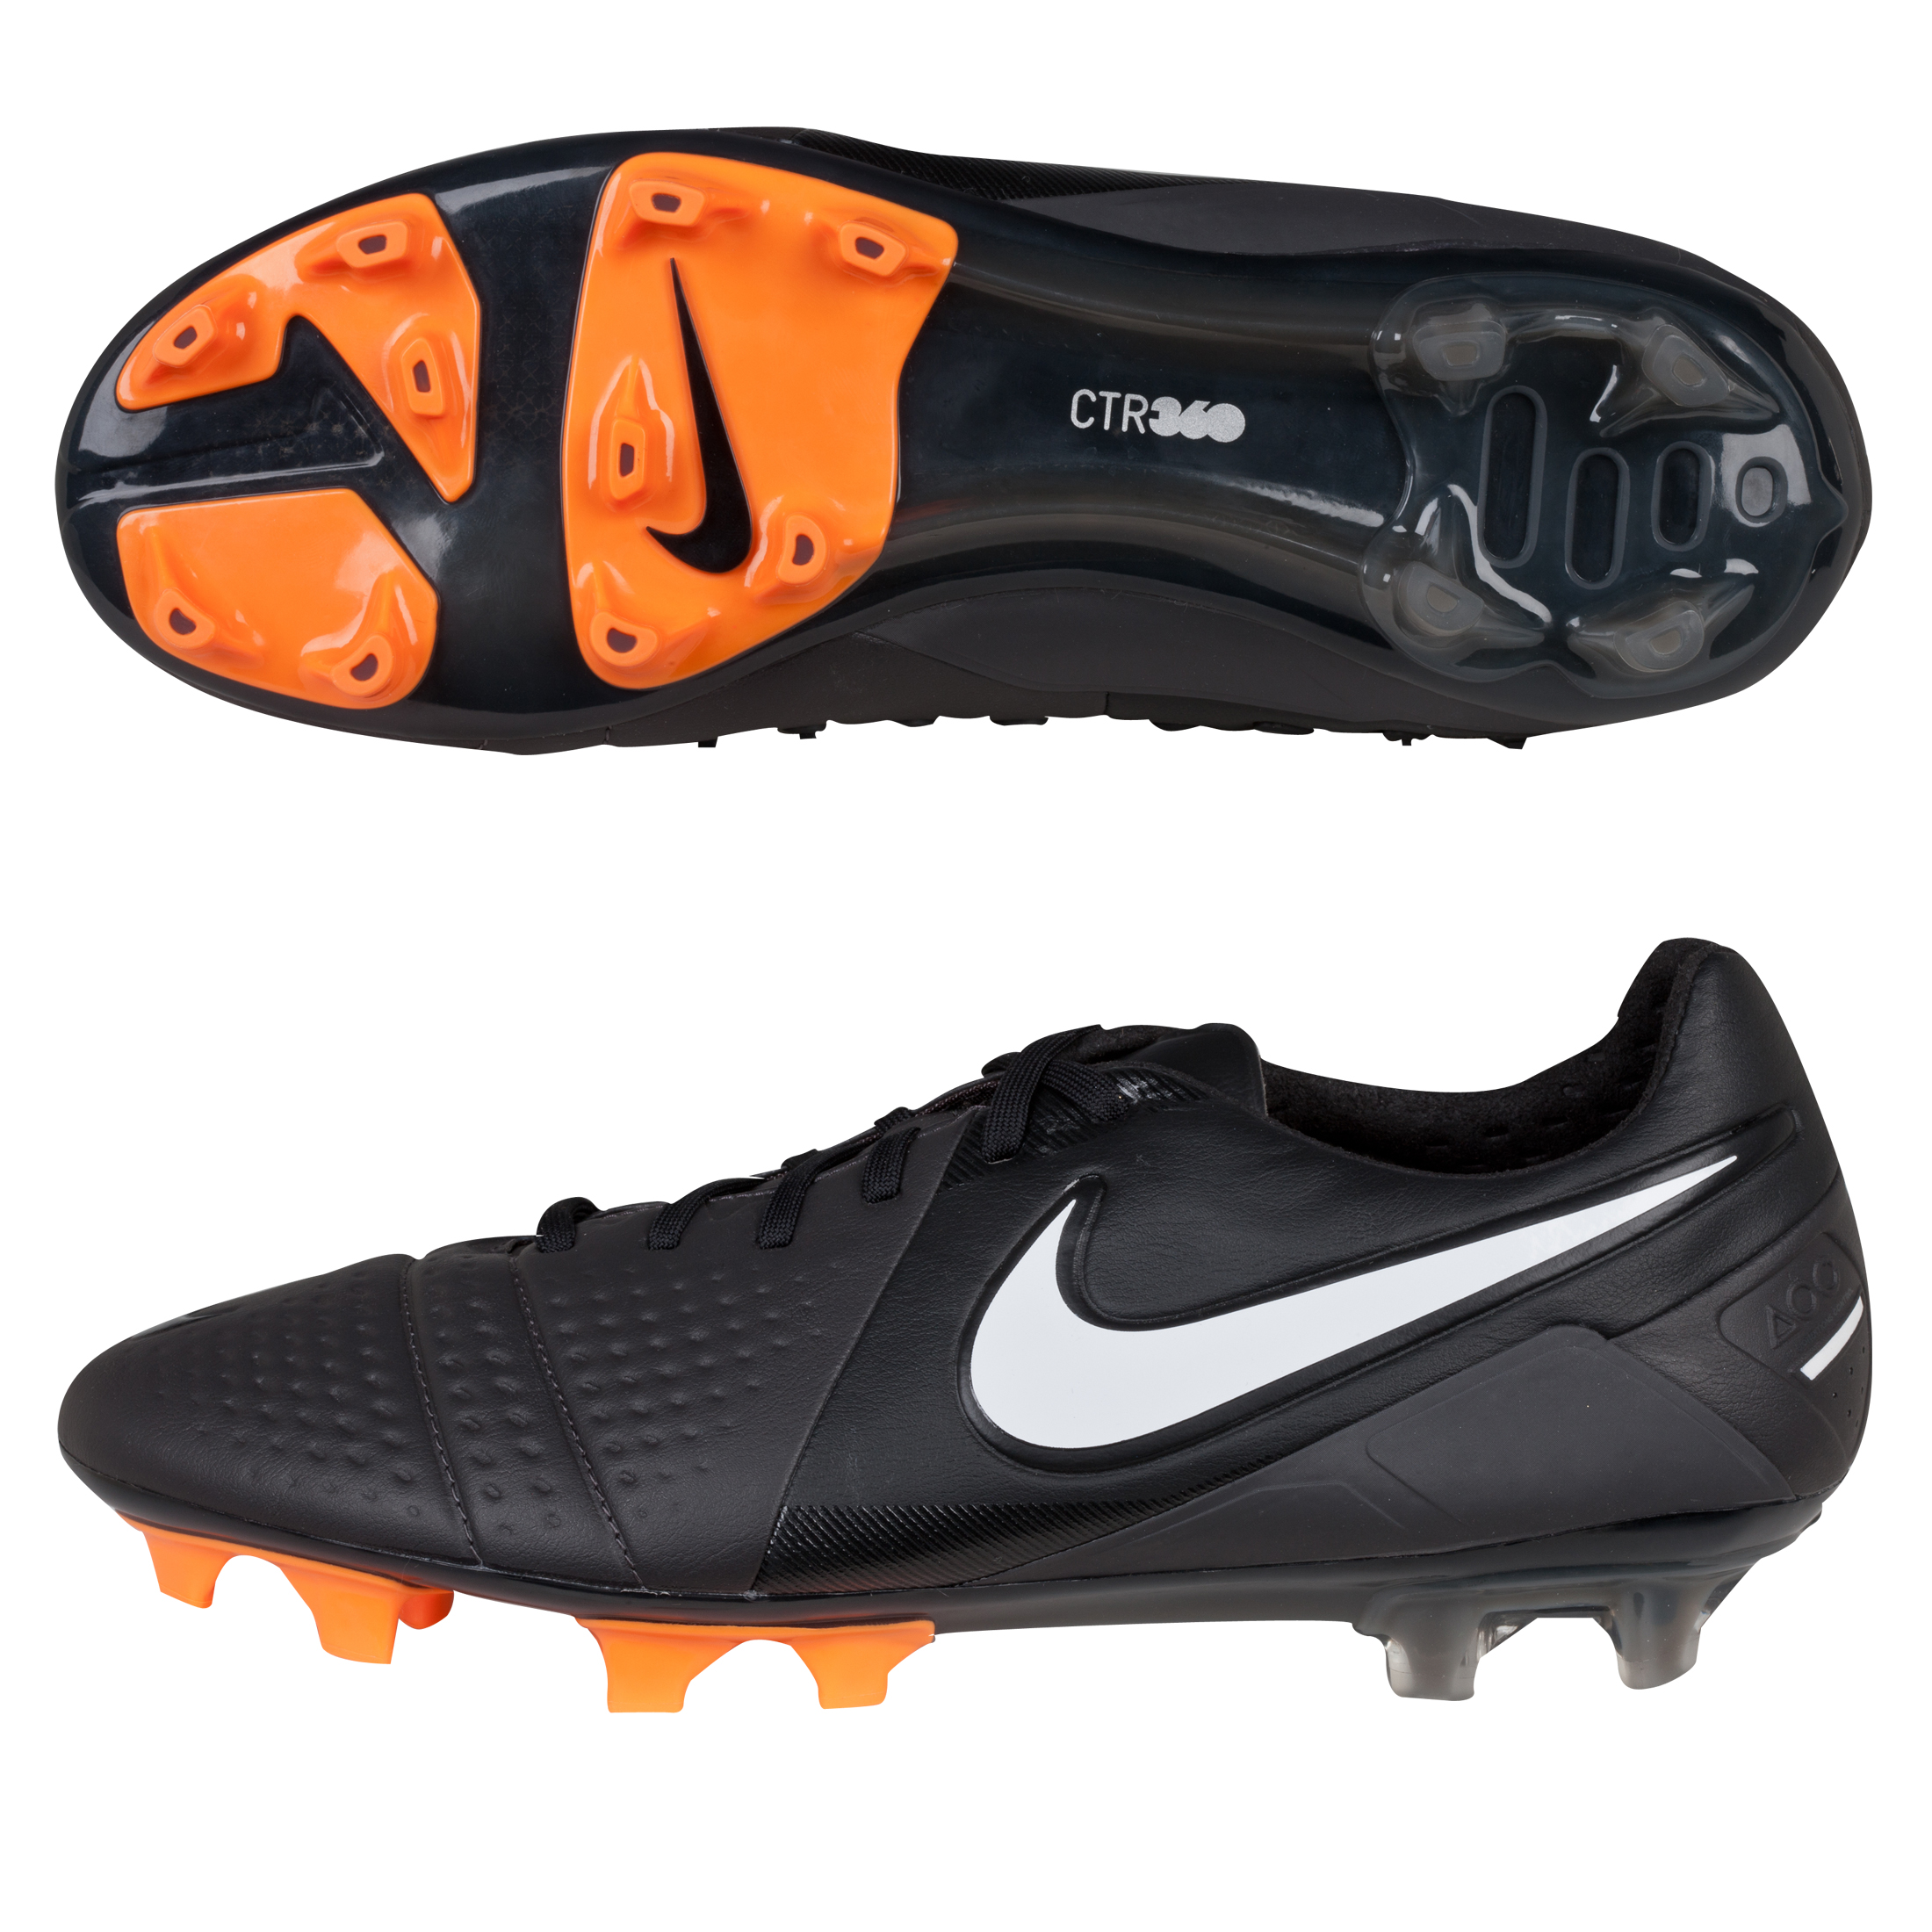 Nike CTR360 Maestri III Firm Ground Football Boots Dk Grey